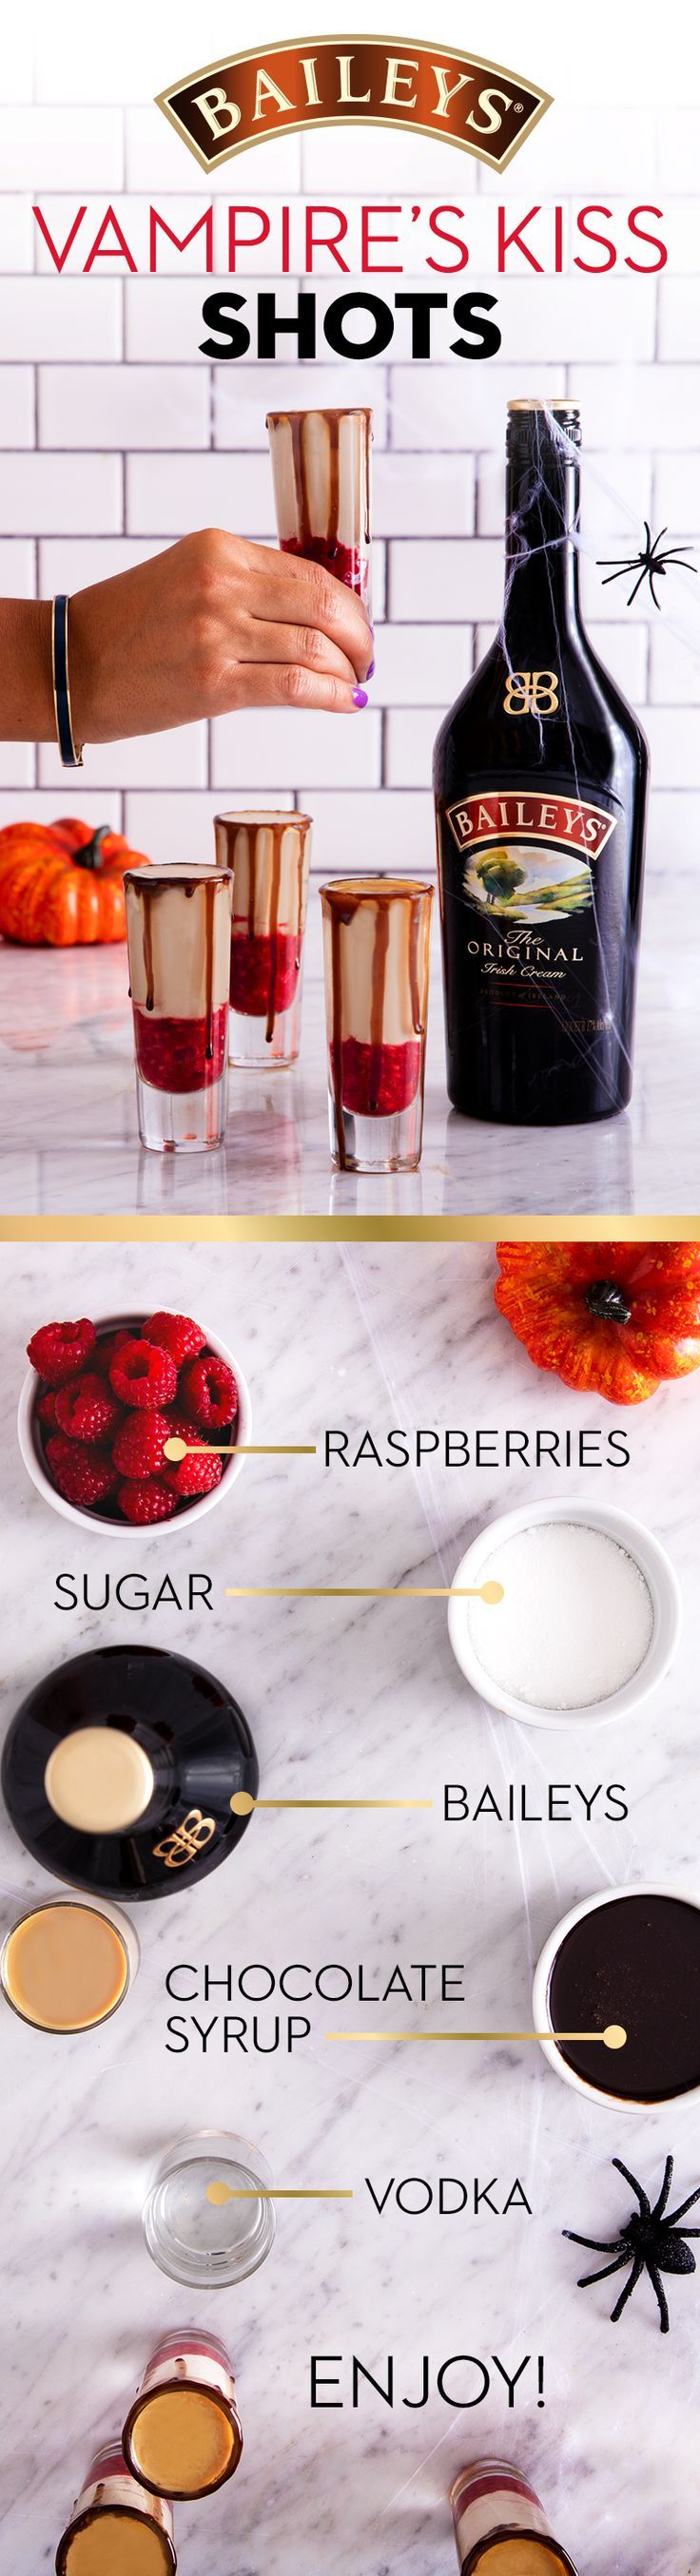 Halloween is approaching and we've got the perfect drink recipe for your party! Trick and treat your friends with these Baileys vampire themed shots. Purée 1 cup raspberries and 2 tablespoons sugar in a blender until smooth. In a shaker with ice, mix 1 o